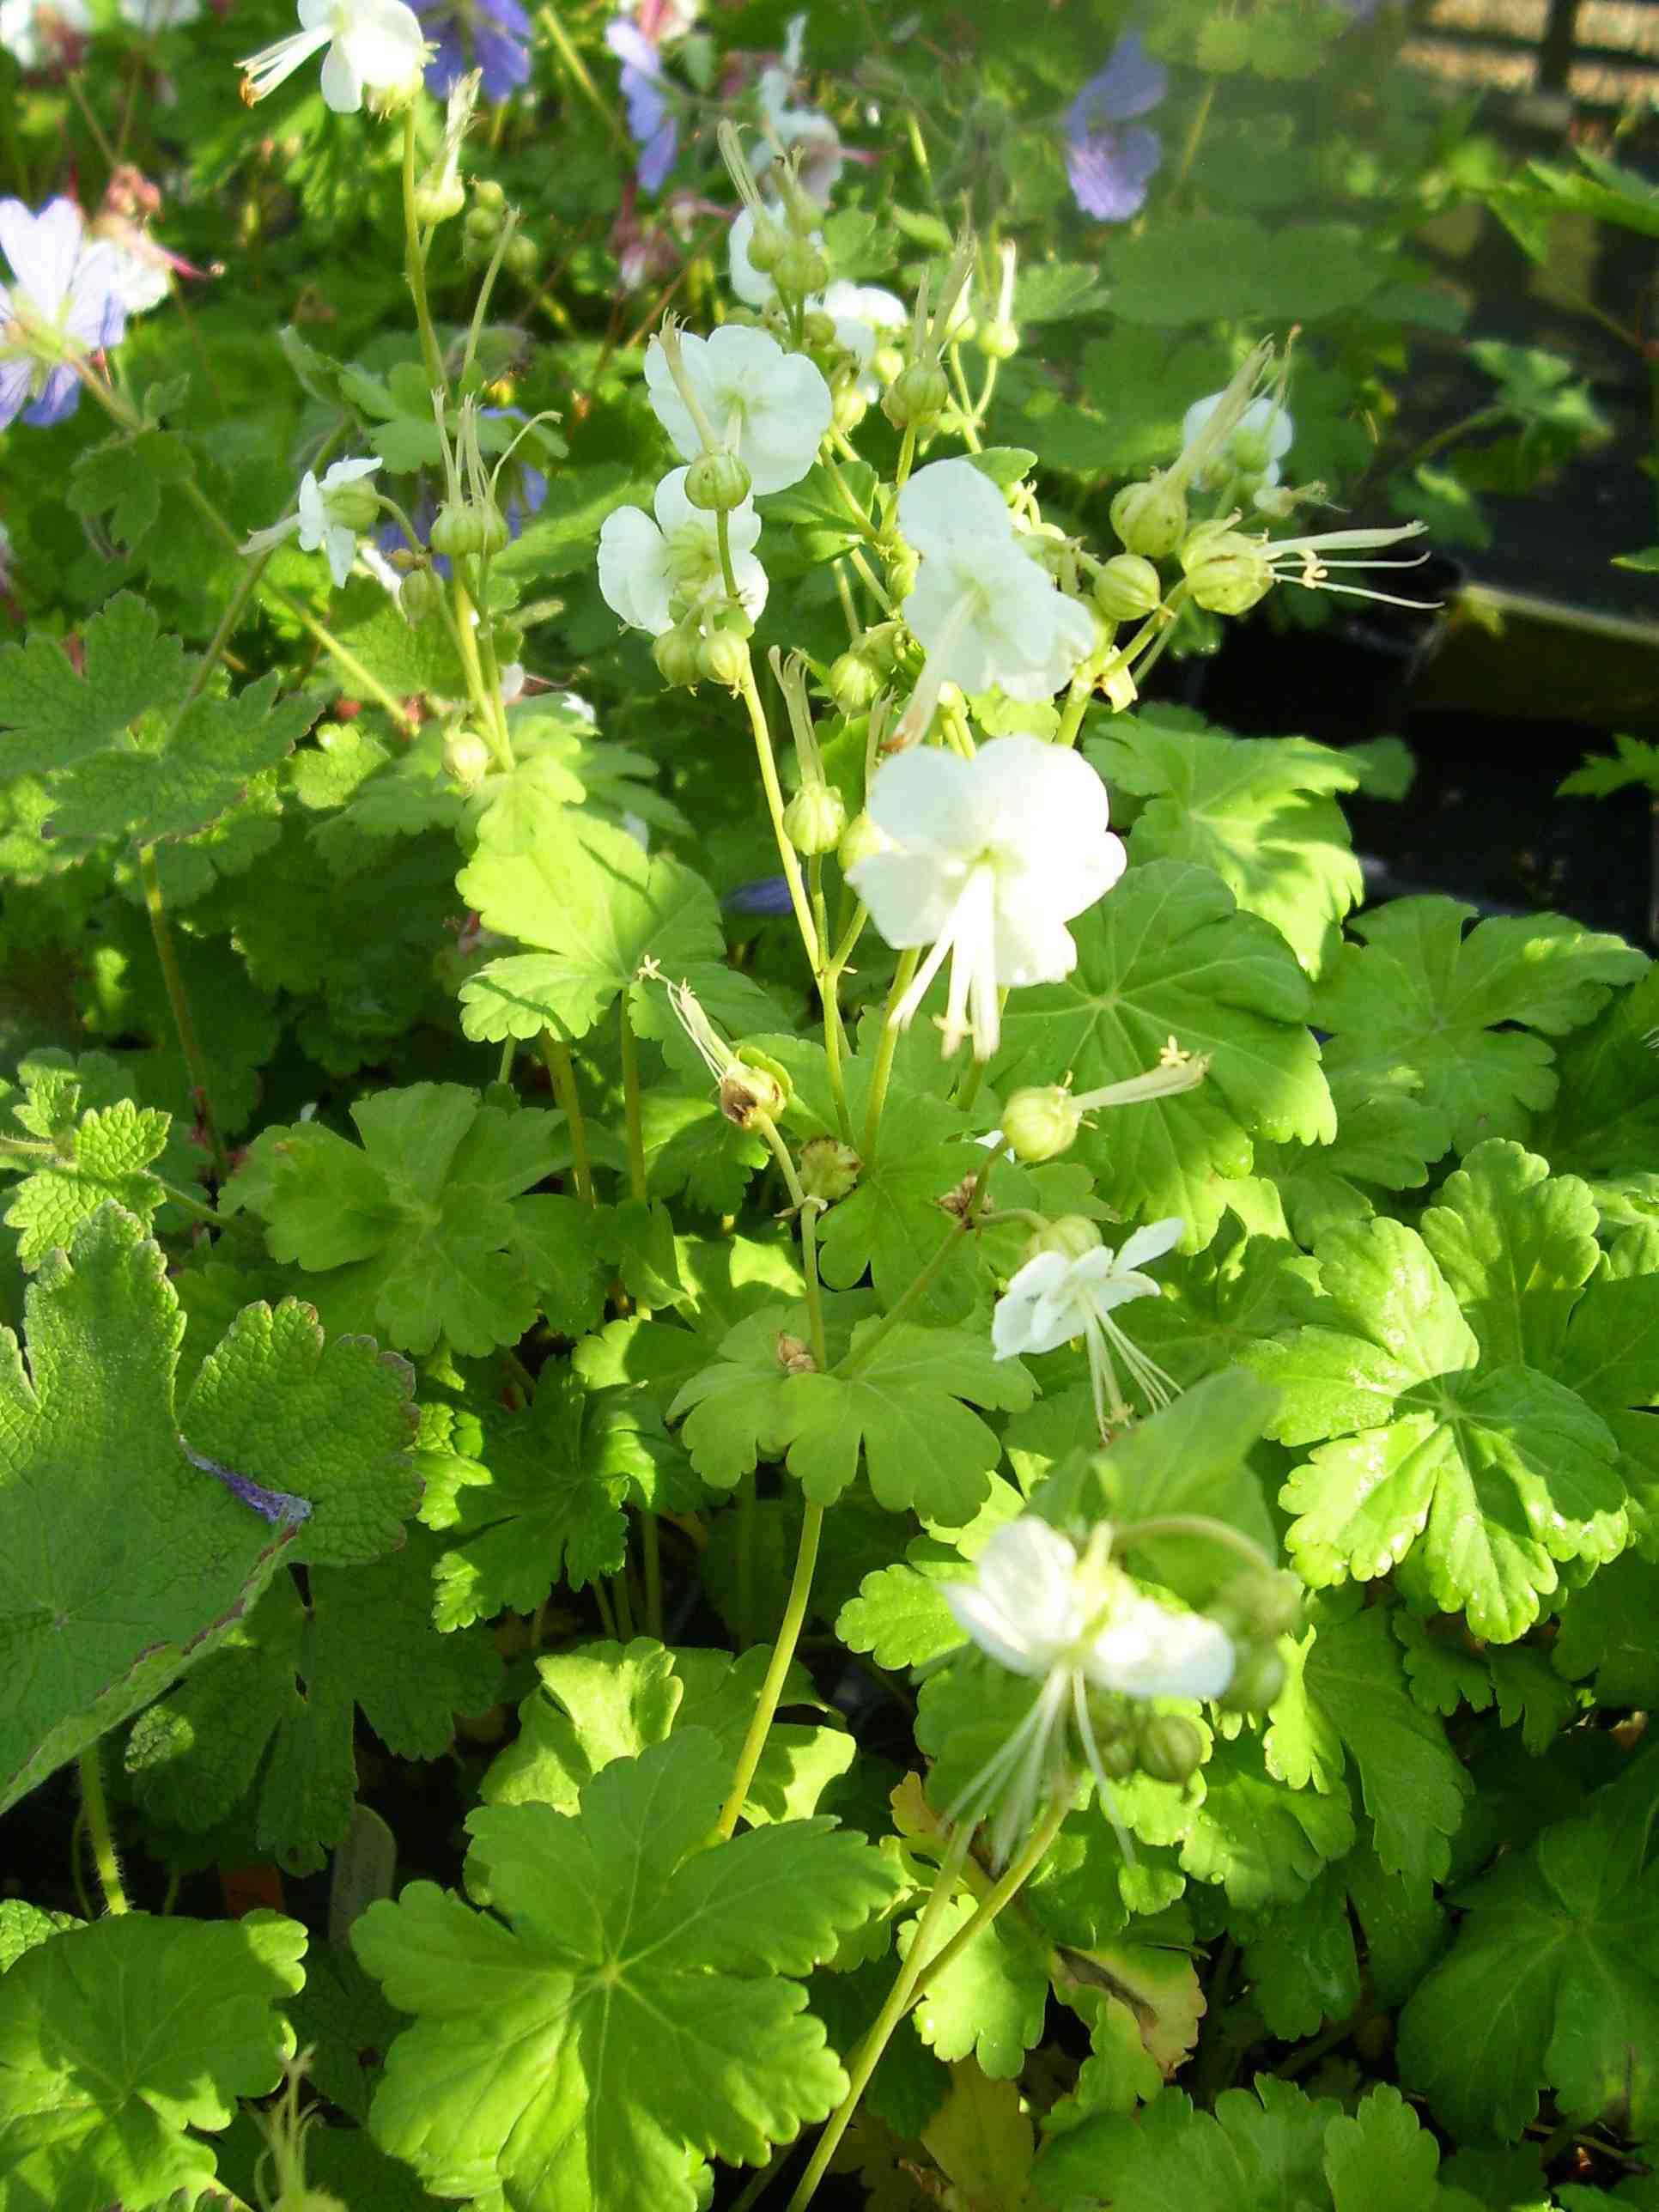 List of hardy perennials smaller than the species with white flowers and pale green calyces mightylinksfo